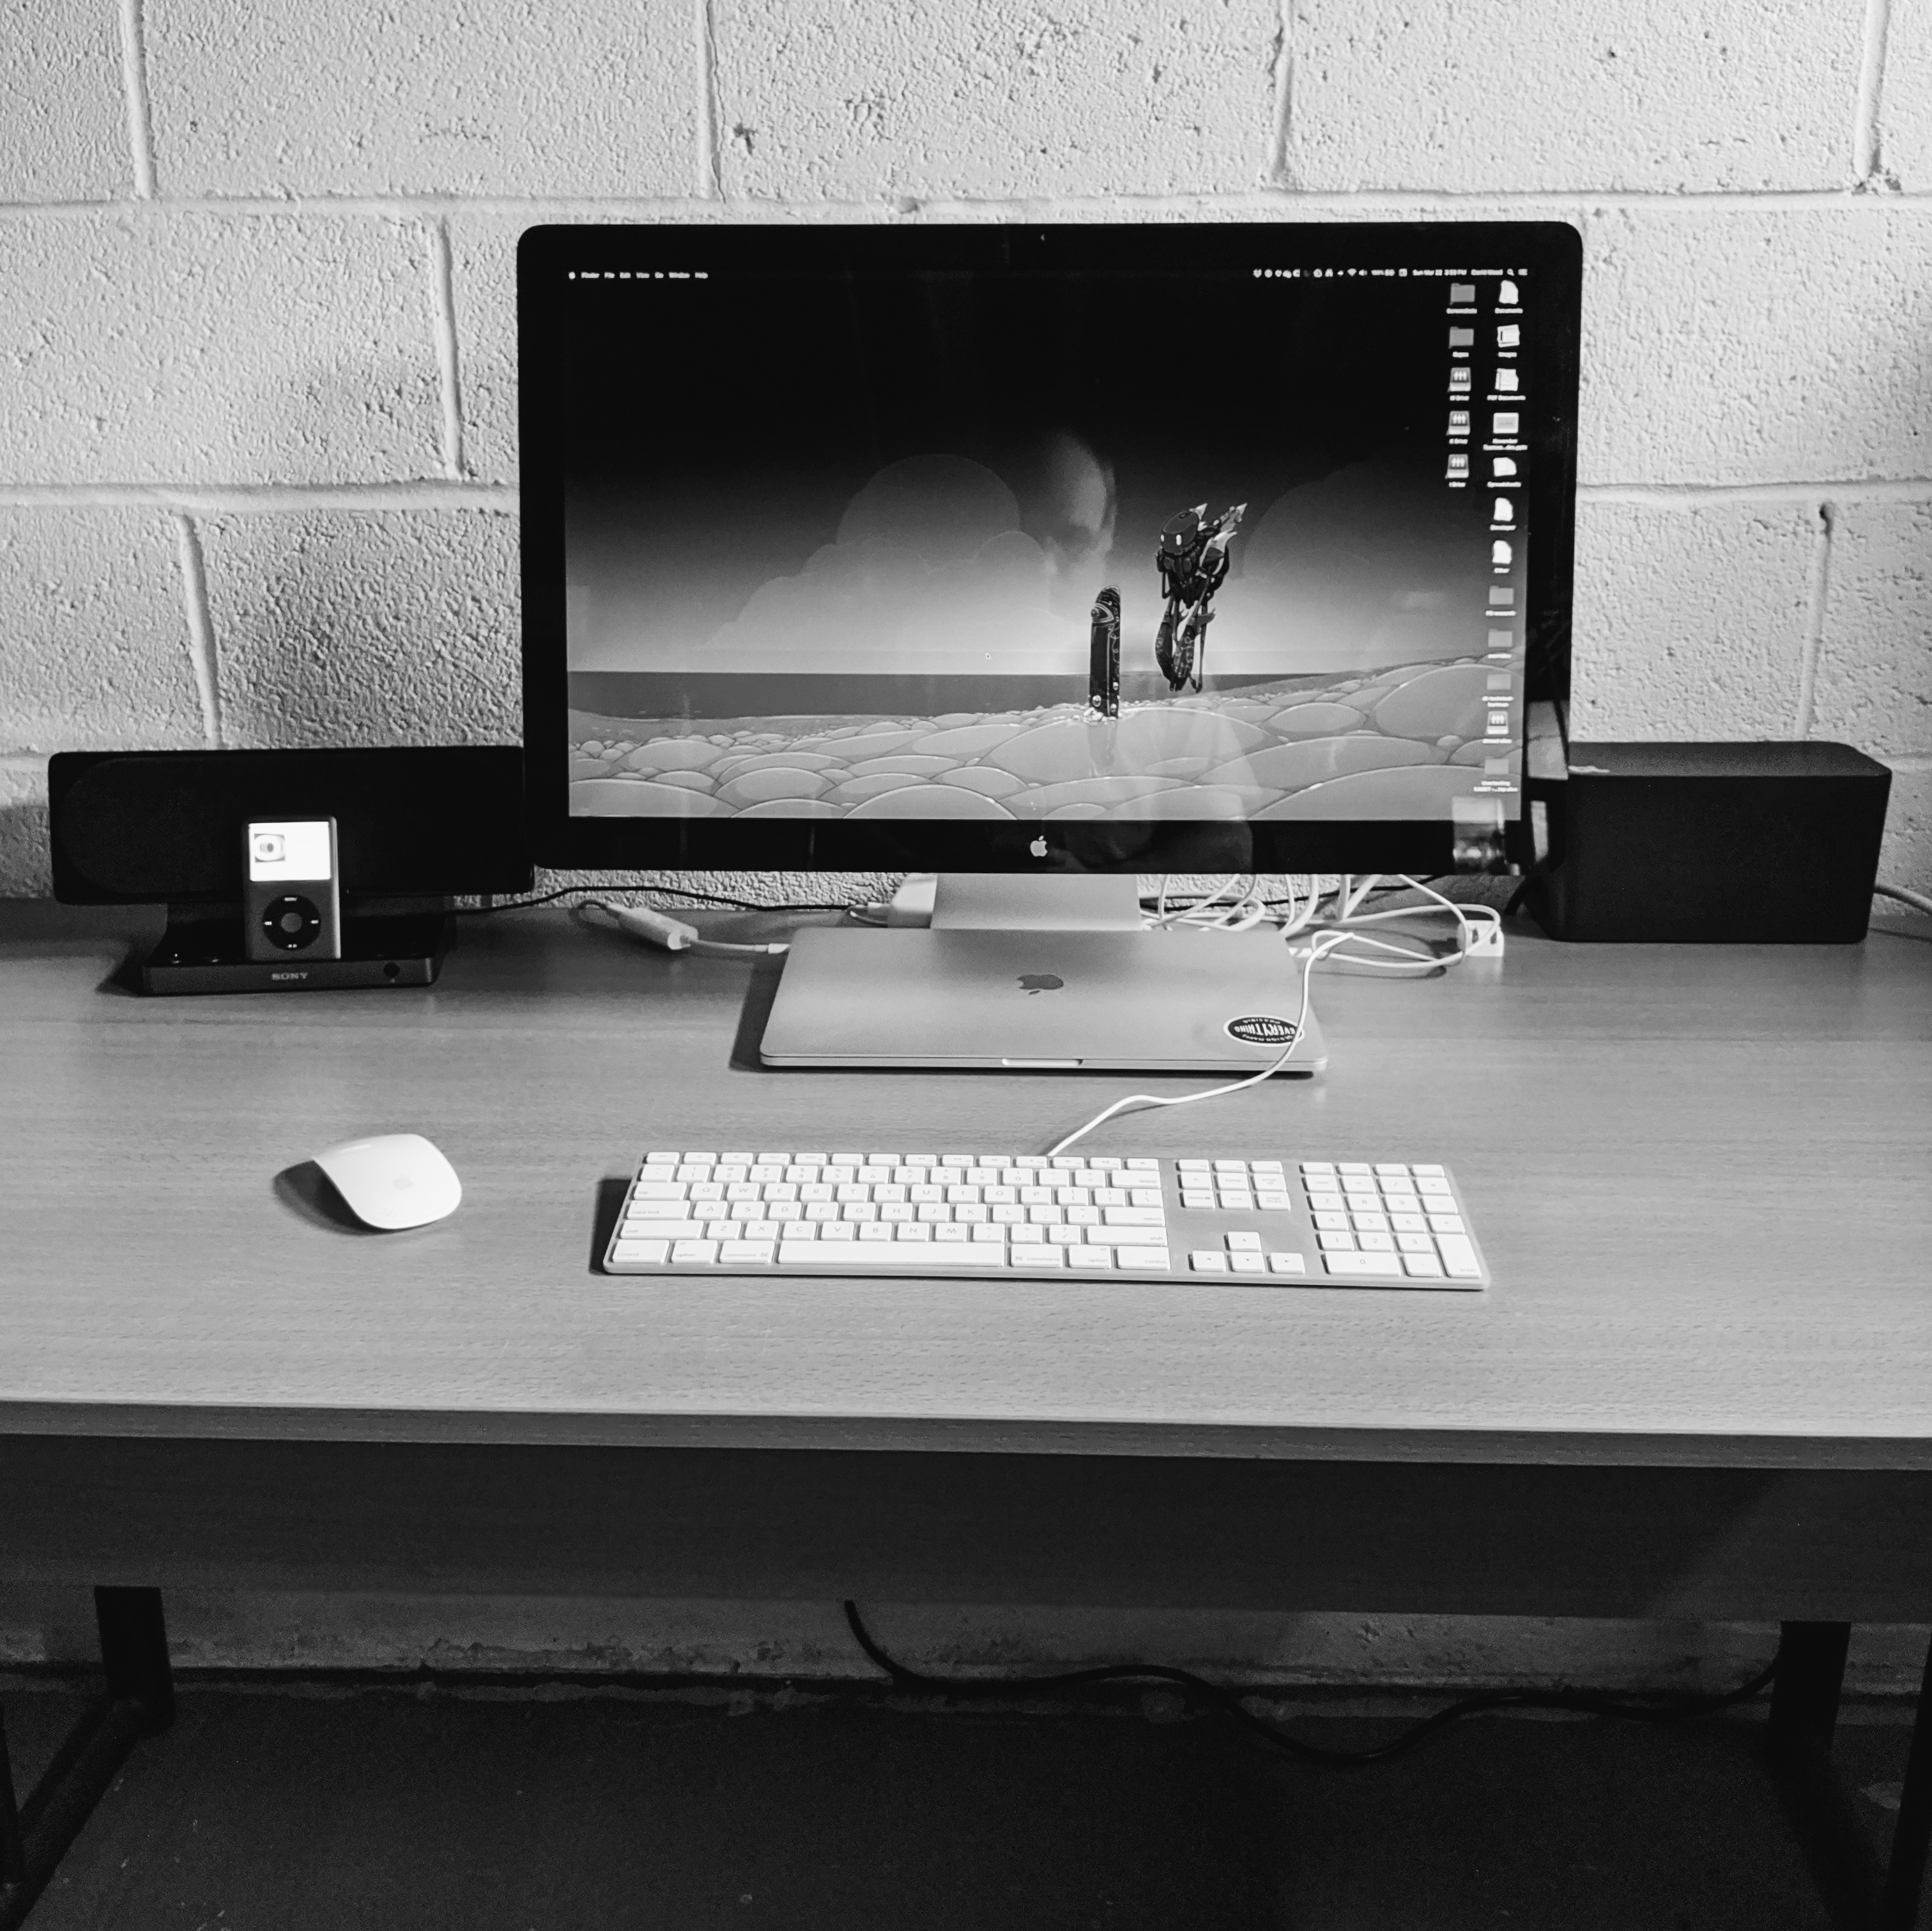 Black and white photo of desk and computer in basement